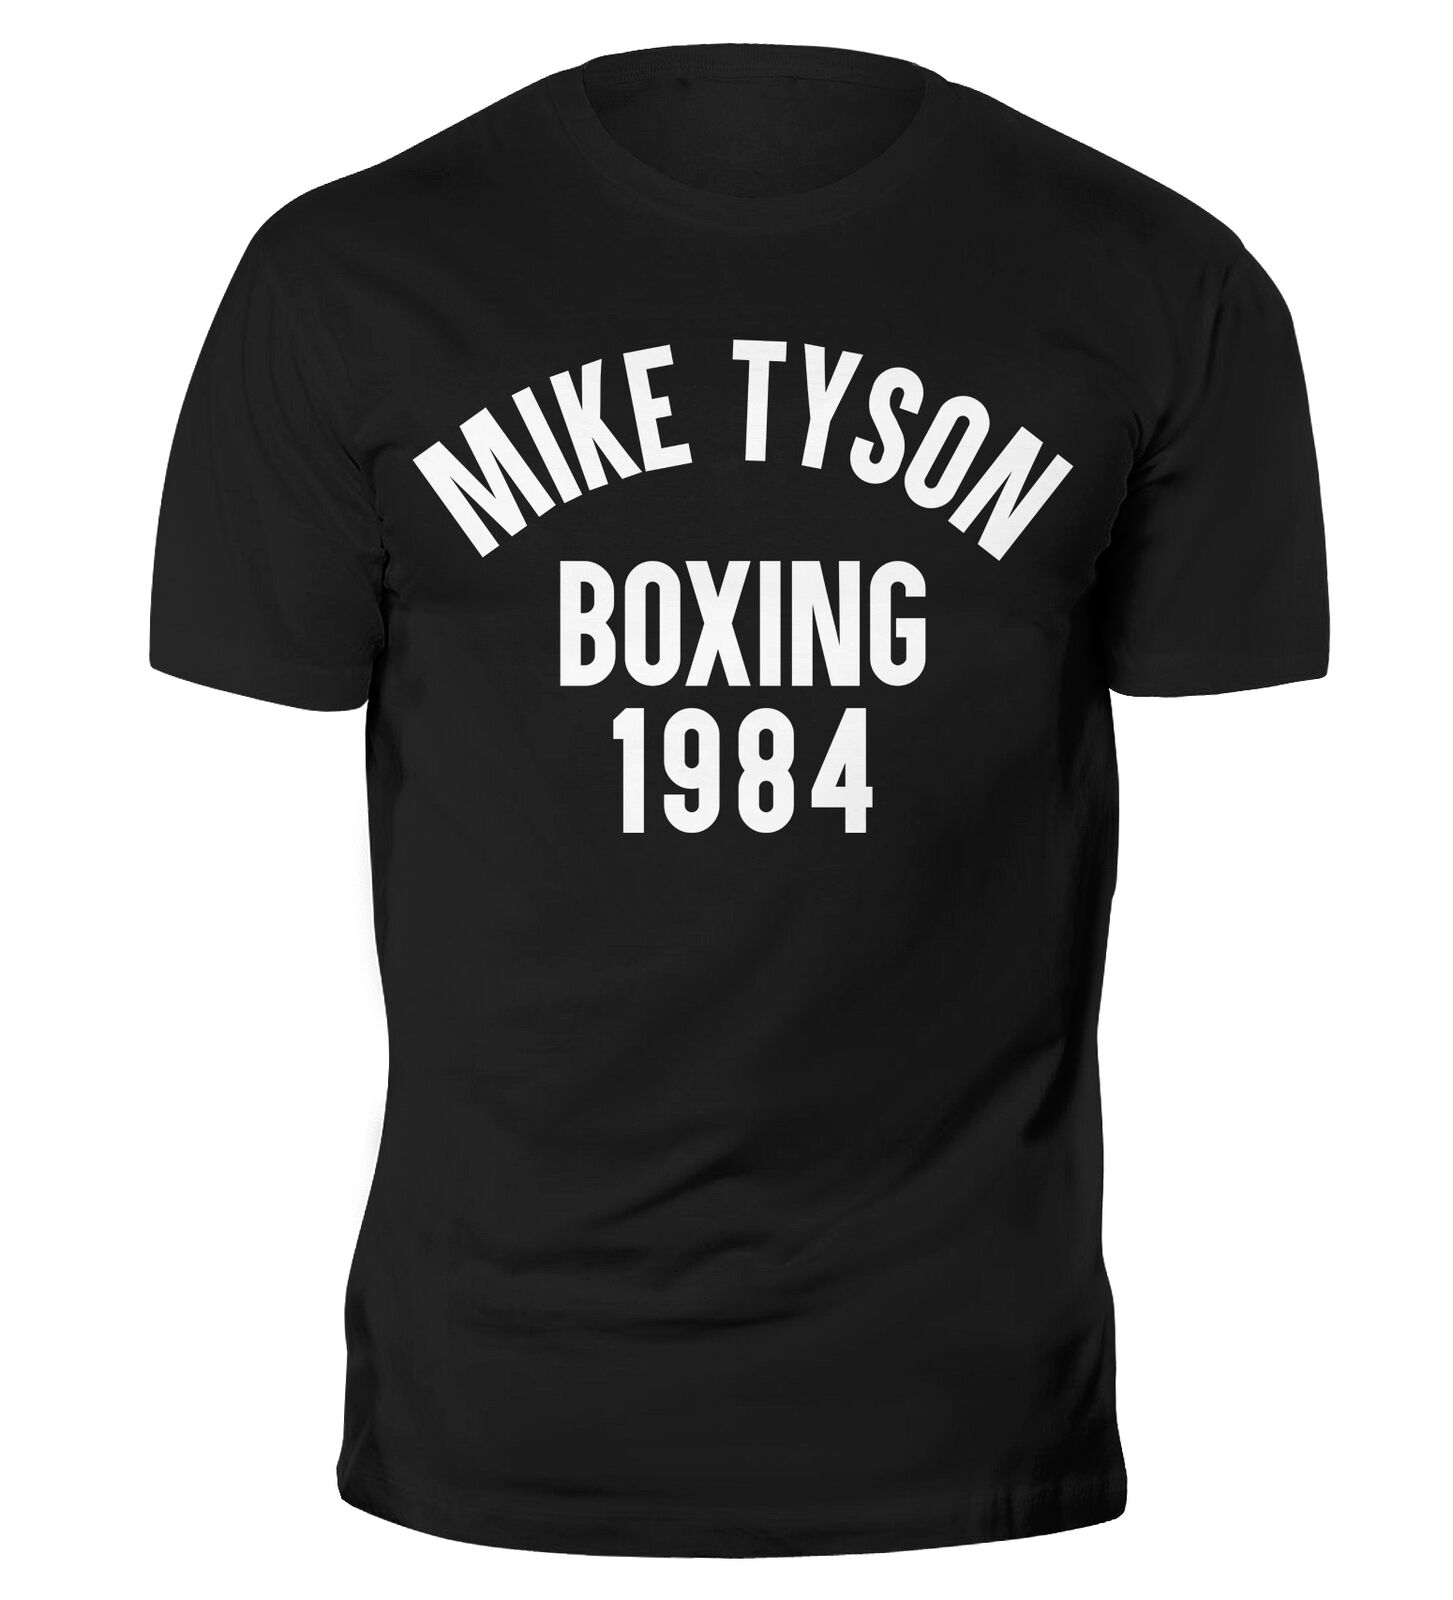 Mike Tyson Legend Boxing 1984 T Shirt Gym Training Muscle Running MMA Top Men